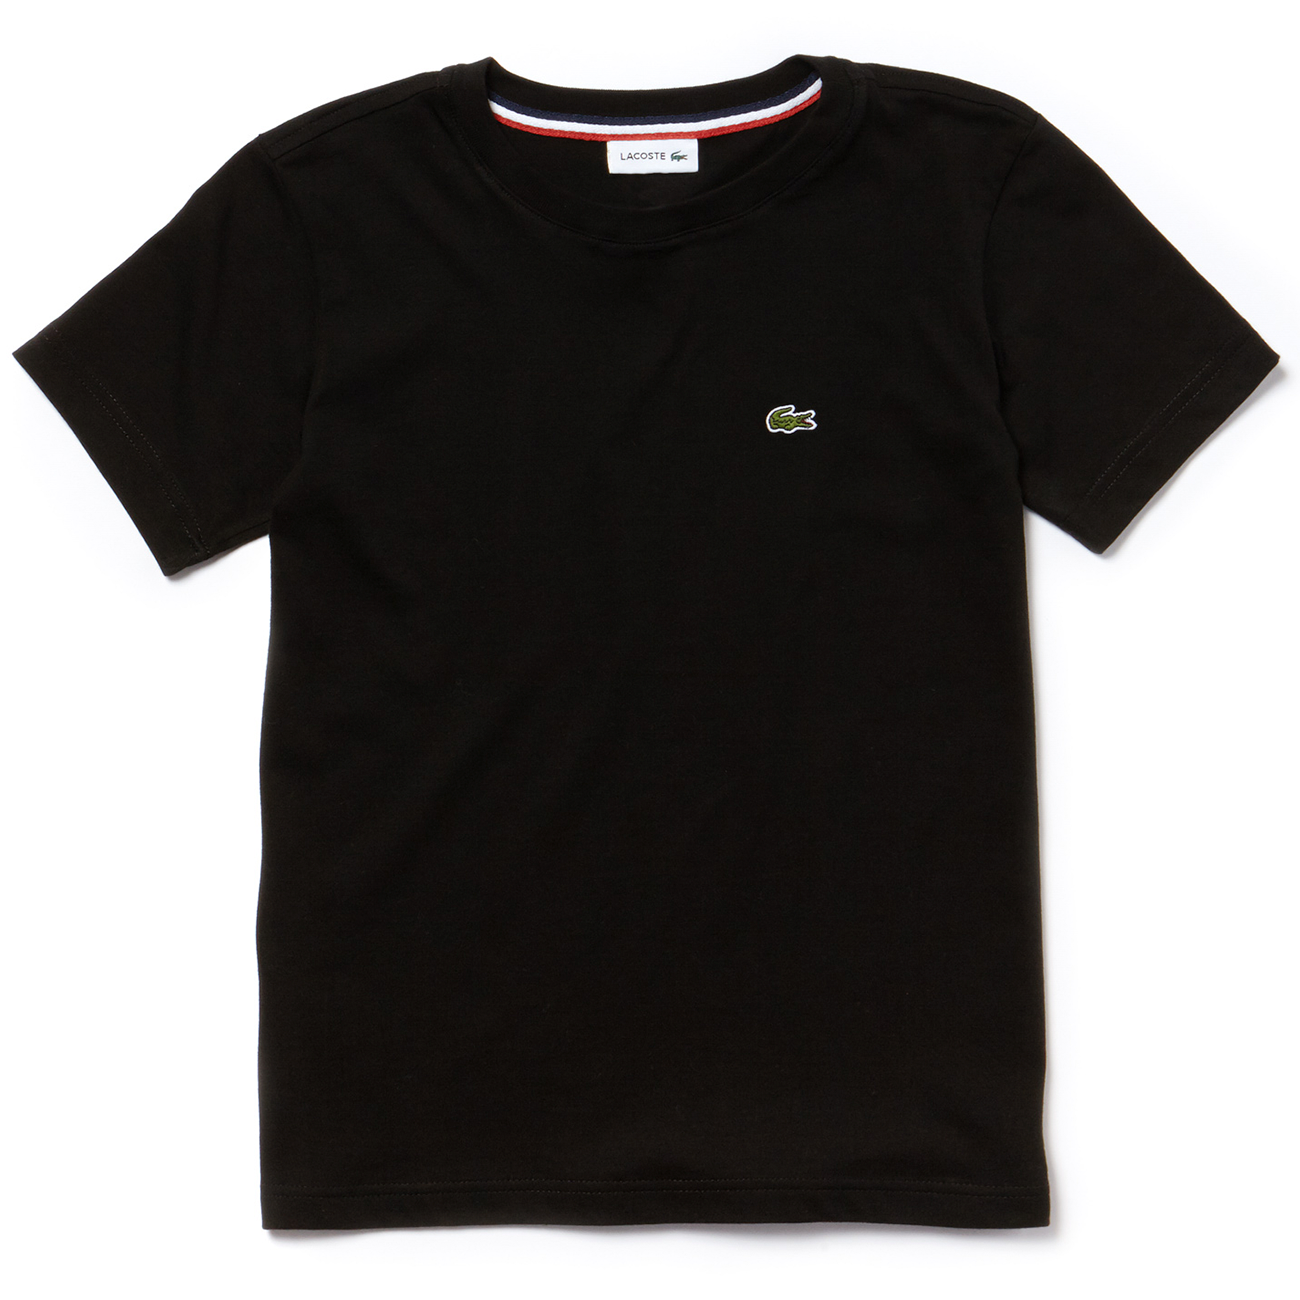 ab71e491a45510 Lacoste-t-shirt-tee-black-sort ...